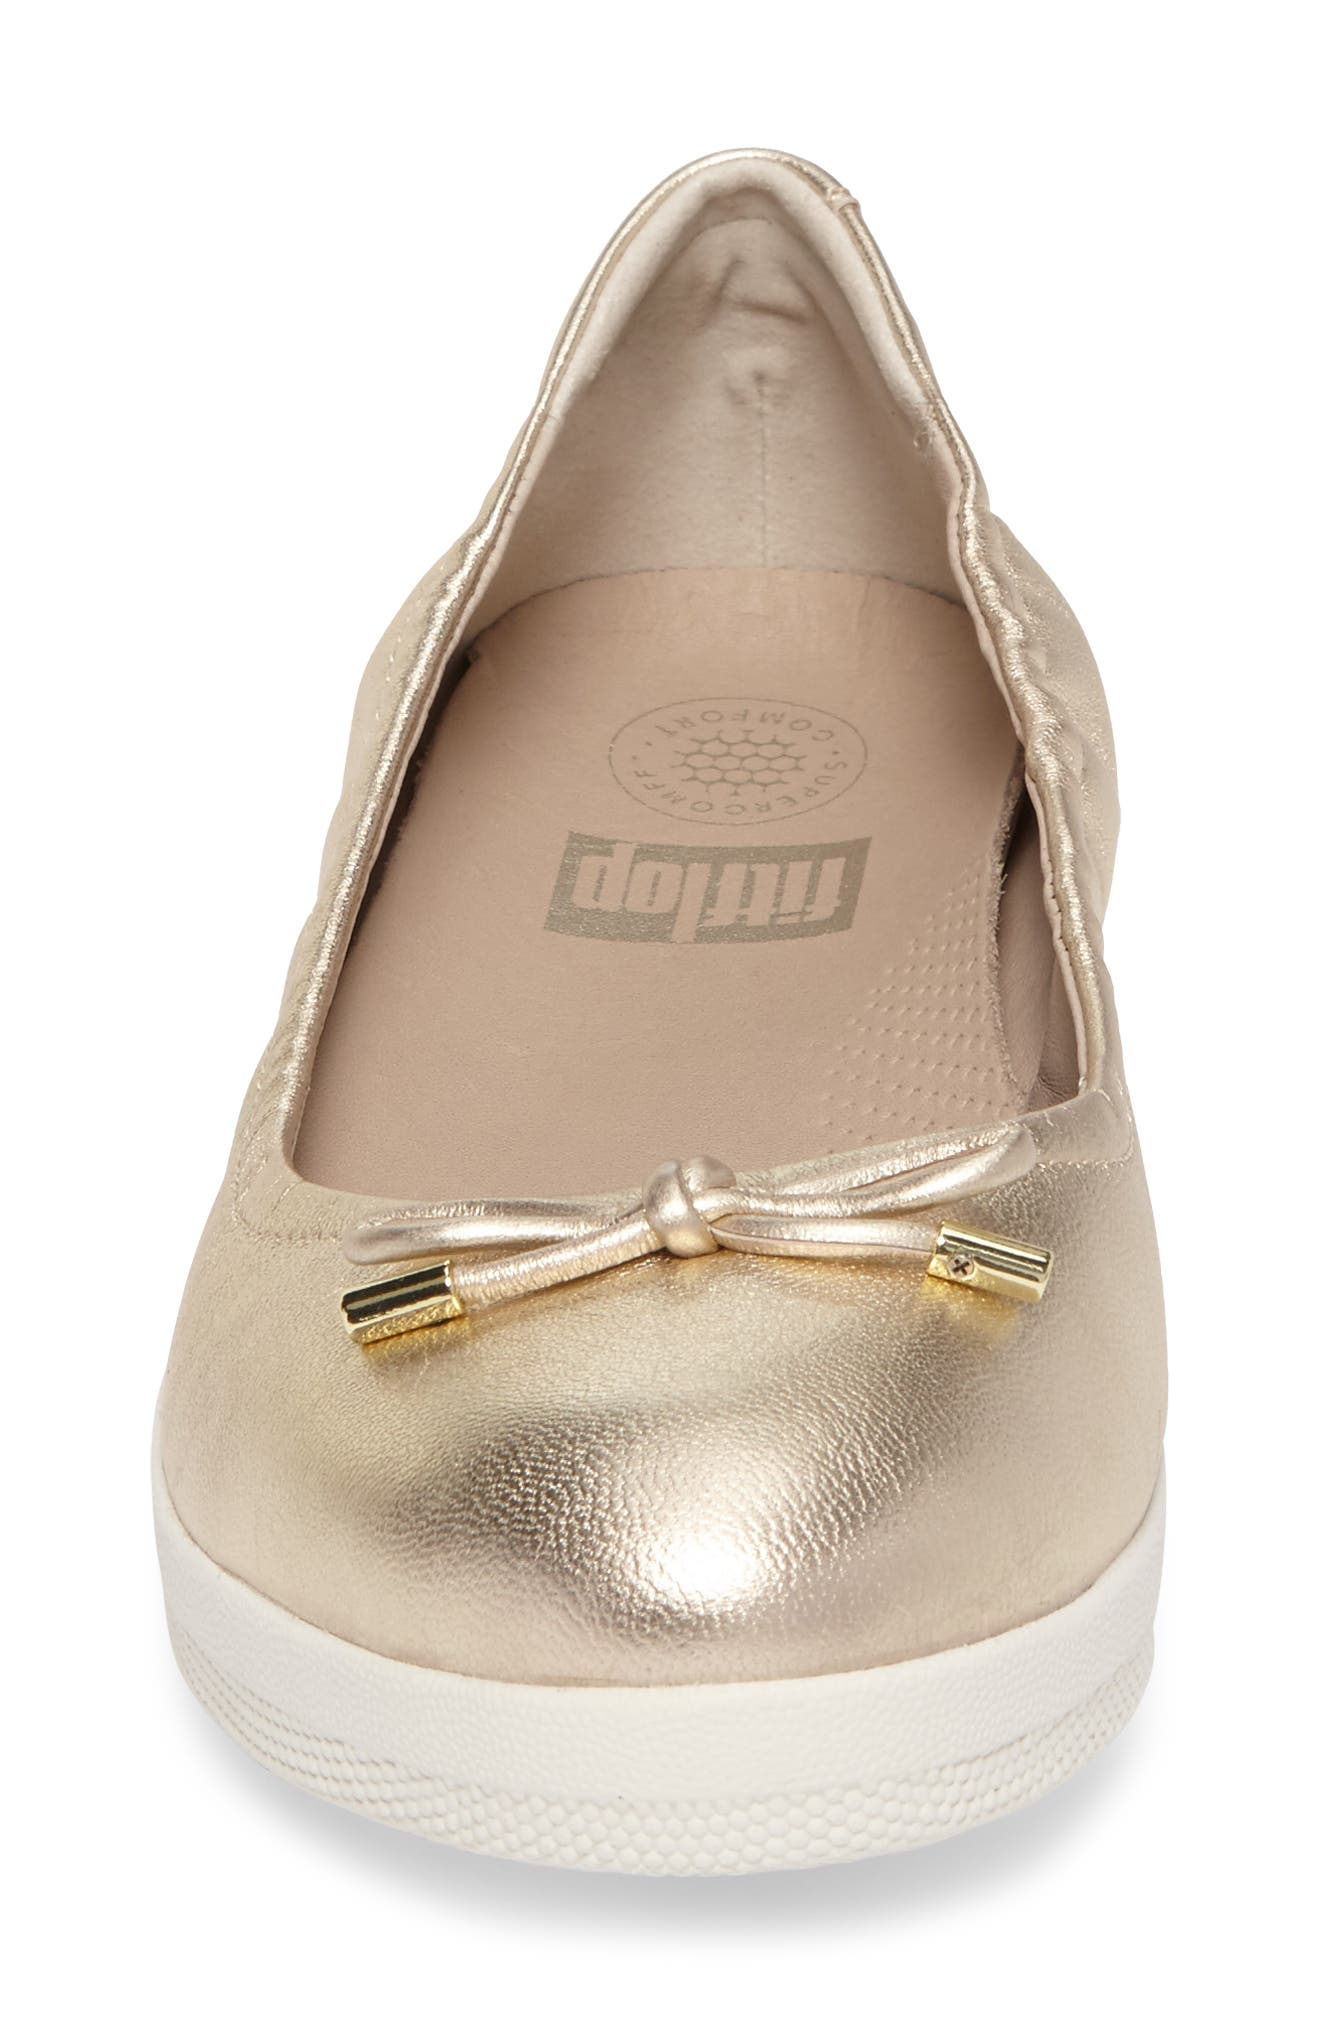 Superbendy Ballerina Flat,                             Alternate thumbnail 4, color,                             Pale Gold Leather